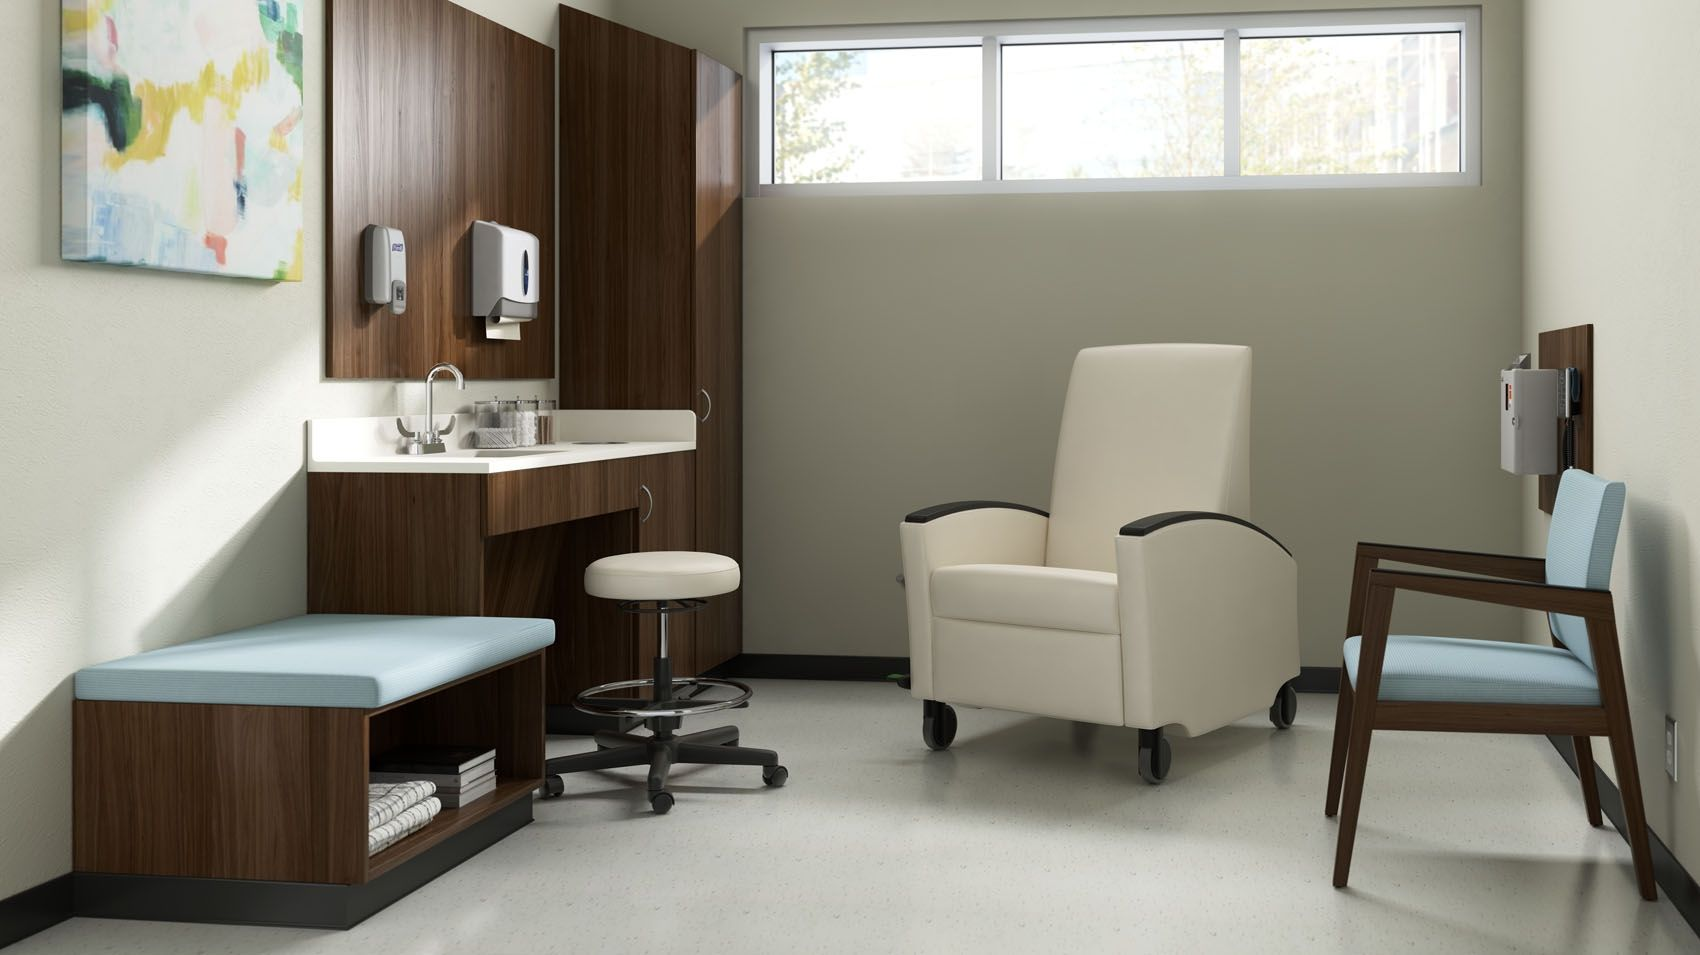 Nice Voyage Recliner   Healthcare Solutions From Meadows Office Preferred  Partner, Carolina Business Furniture.